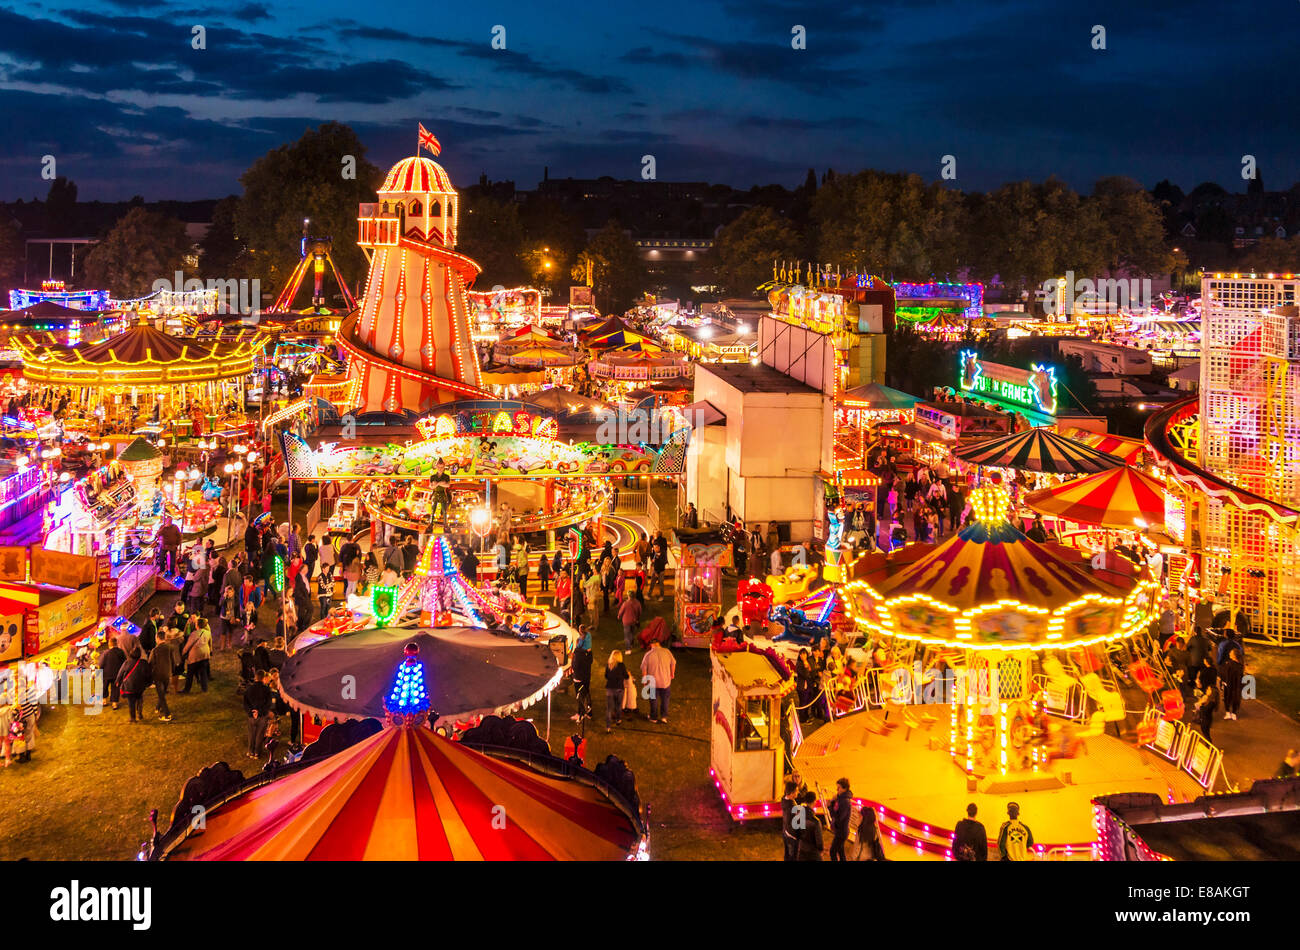 describe a fun fair The digital funfair is one the most original, imaginative and eccentric sideshows  in  across festival sites to show them what they've just seen but can't describe.